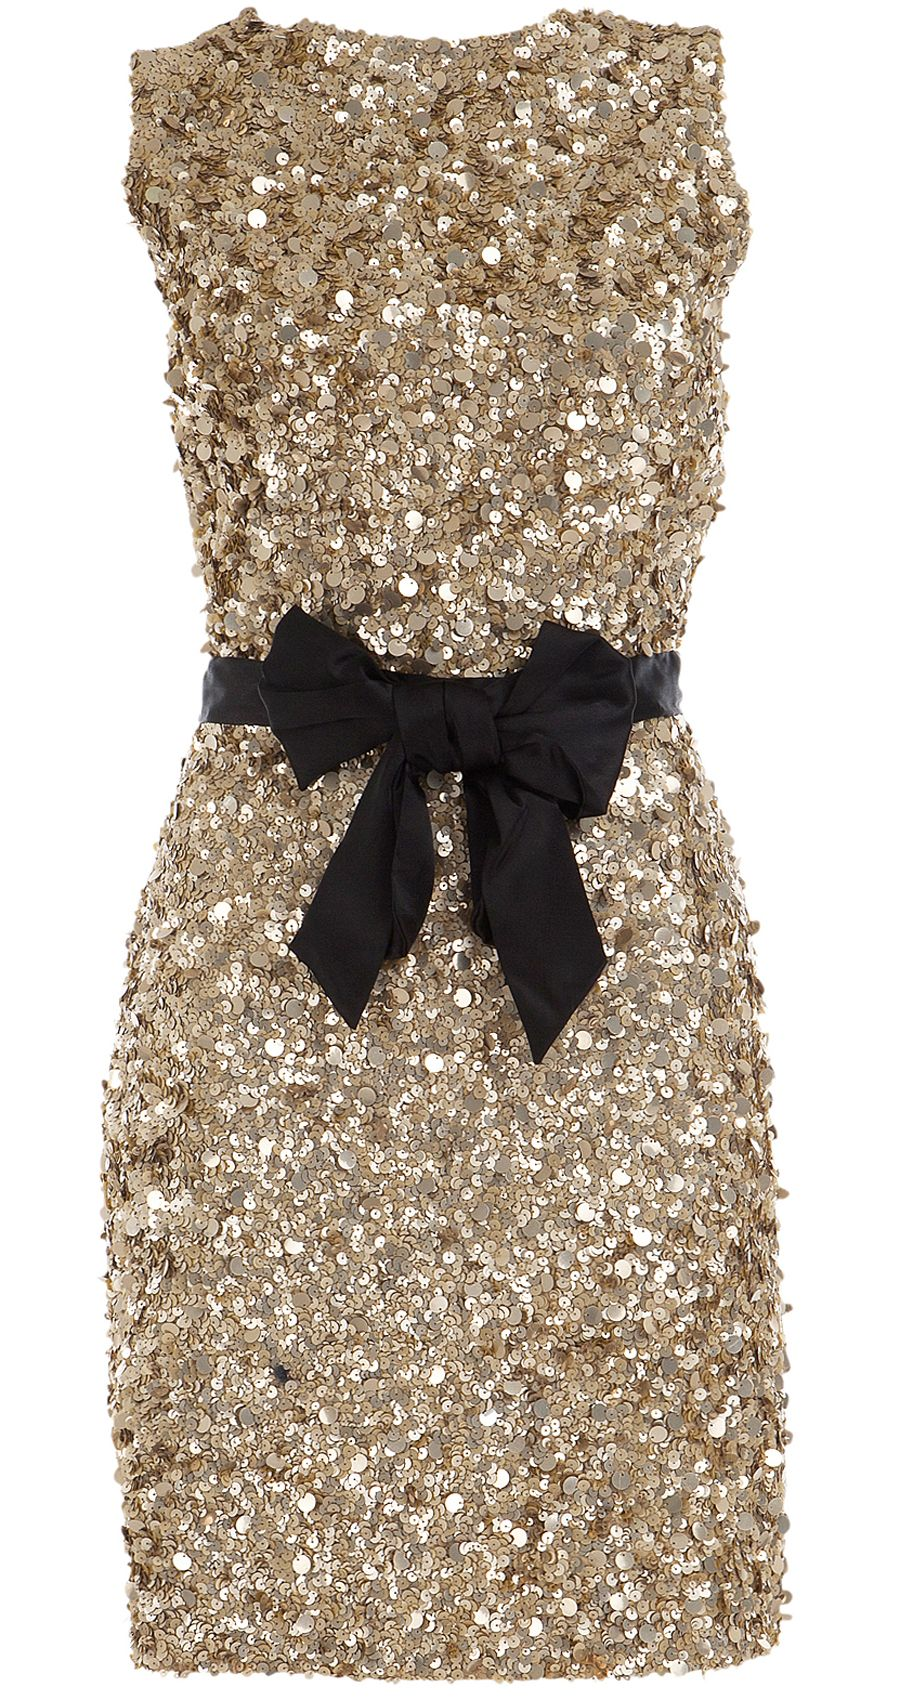 Gold sequin dress with black bow belt the perfect holiday dress